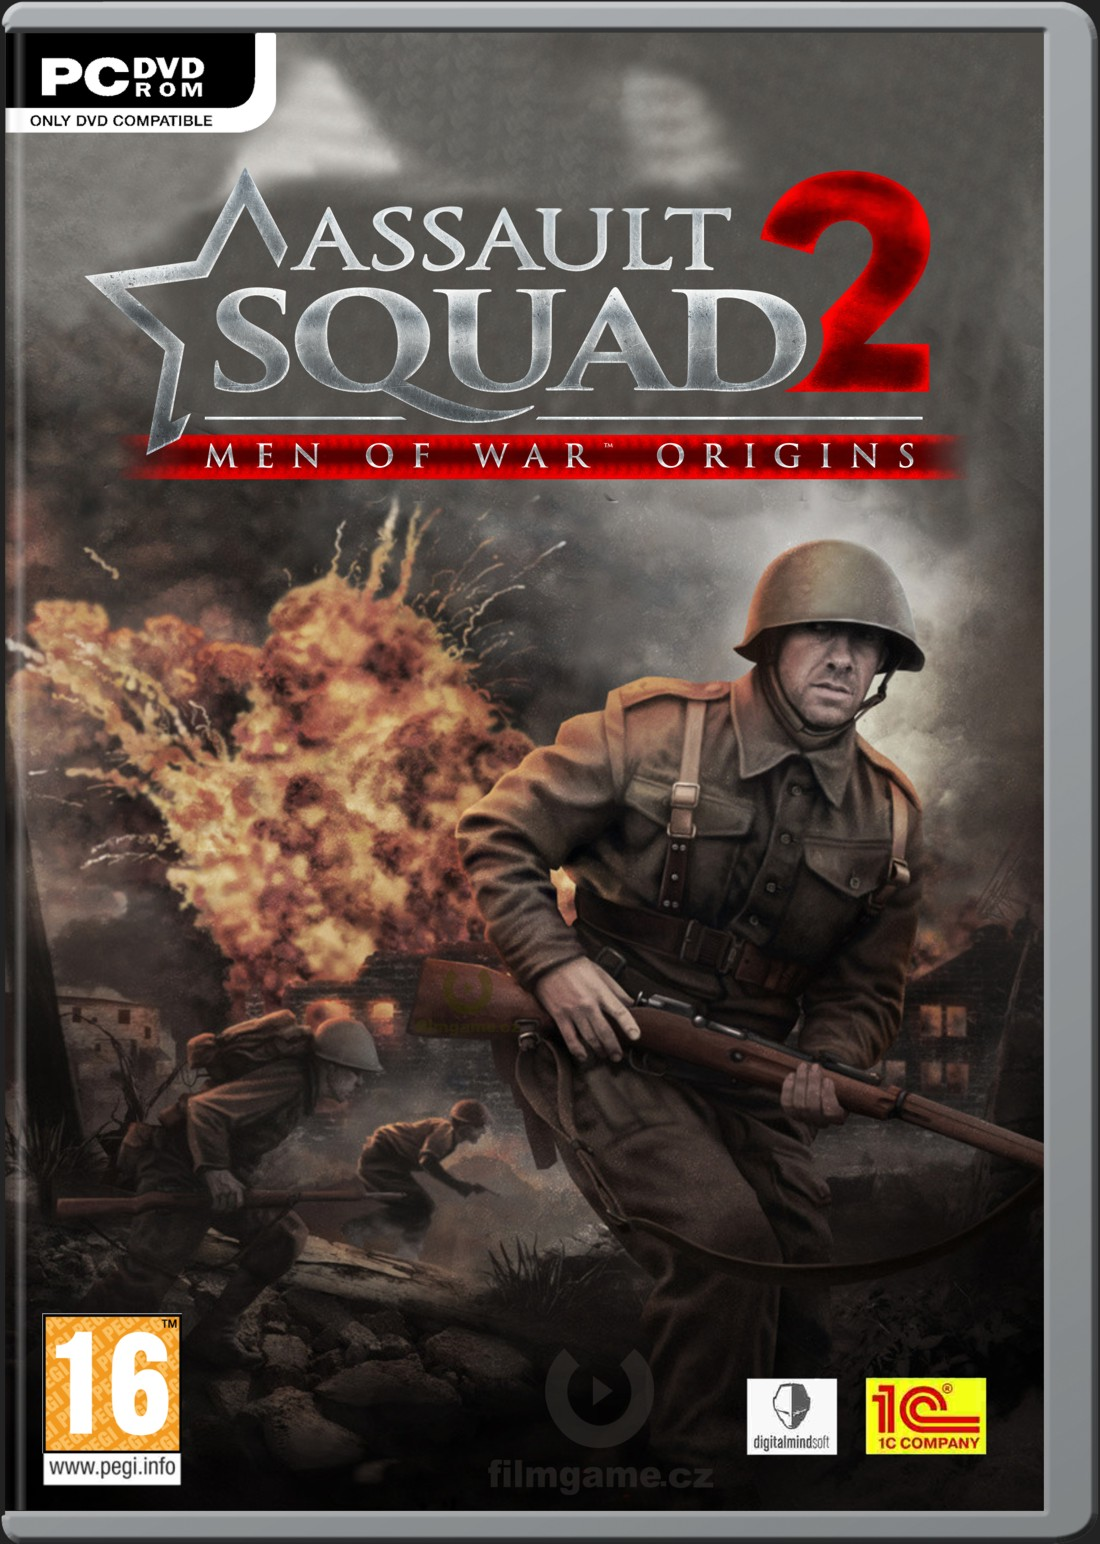 ASSAULT SQUAD 2: MEN OF WAR ORIGINS - PC